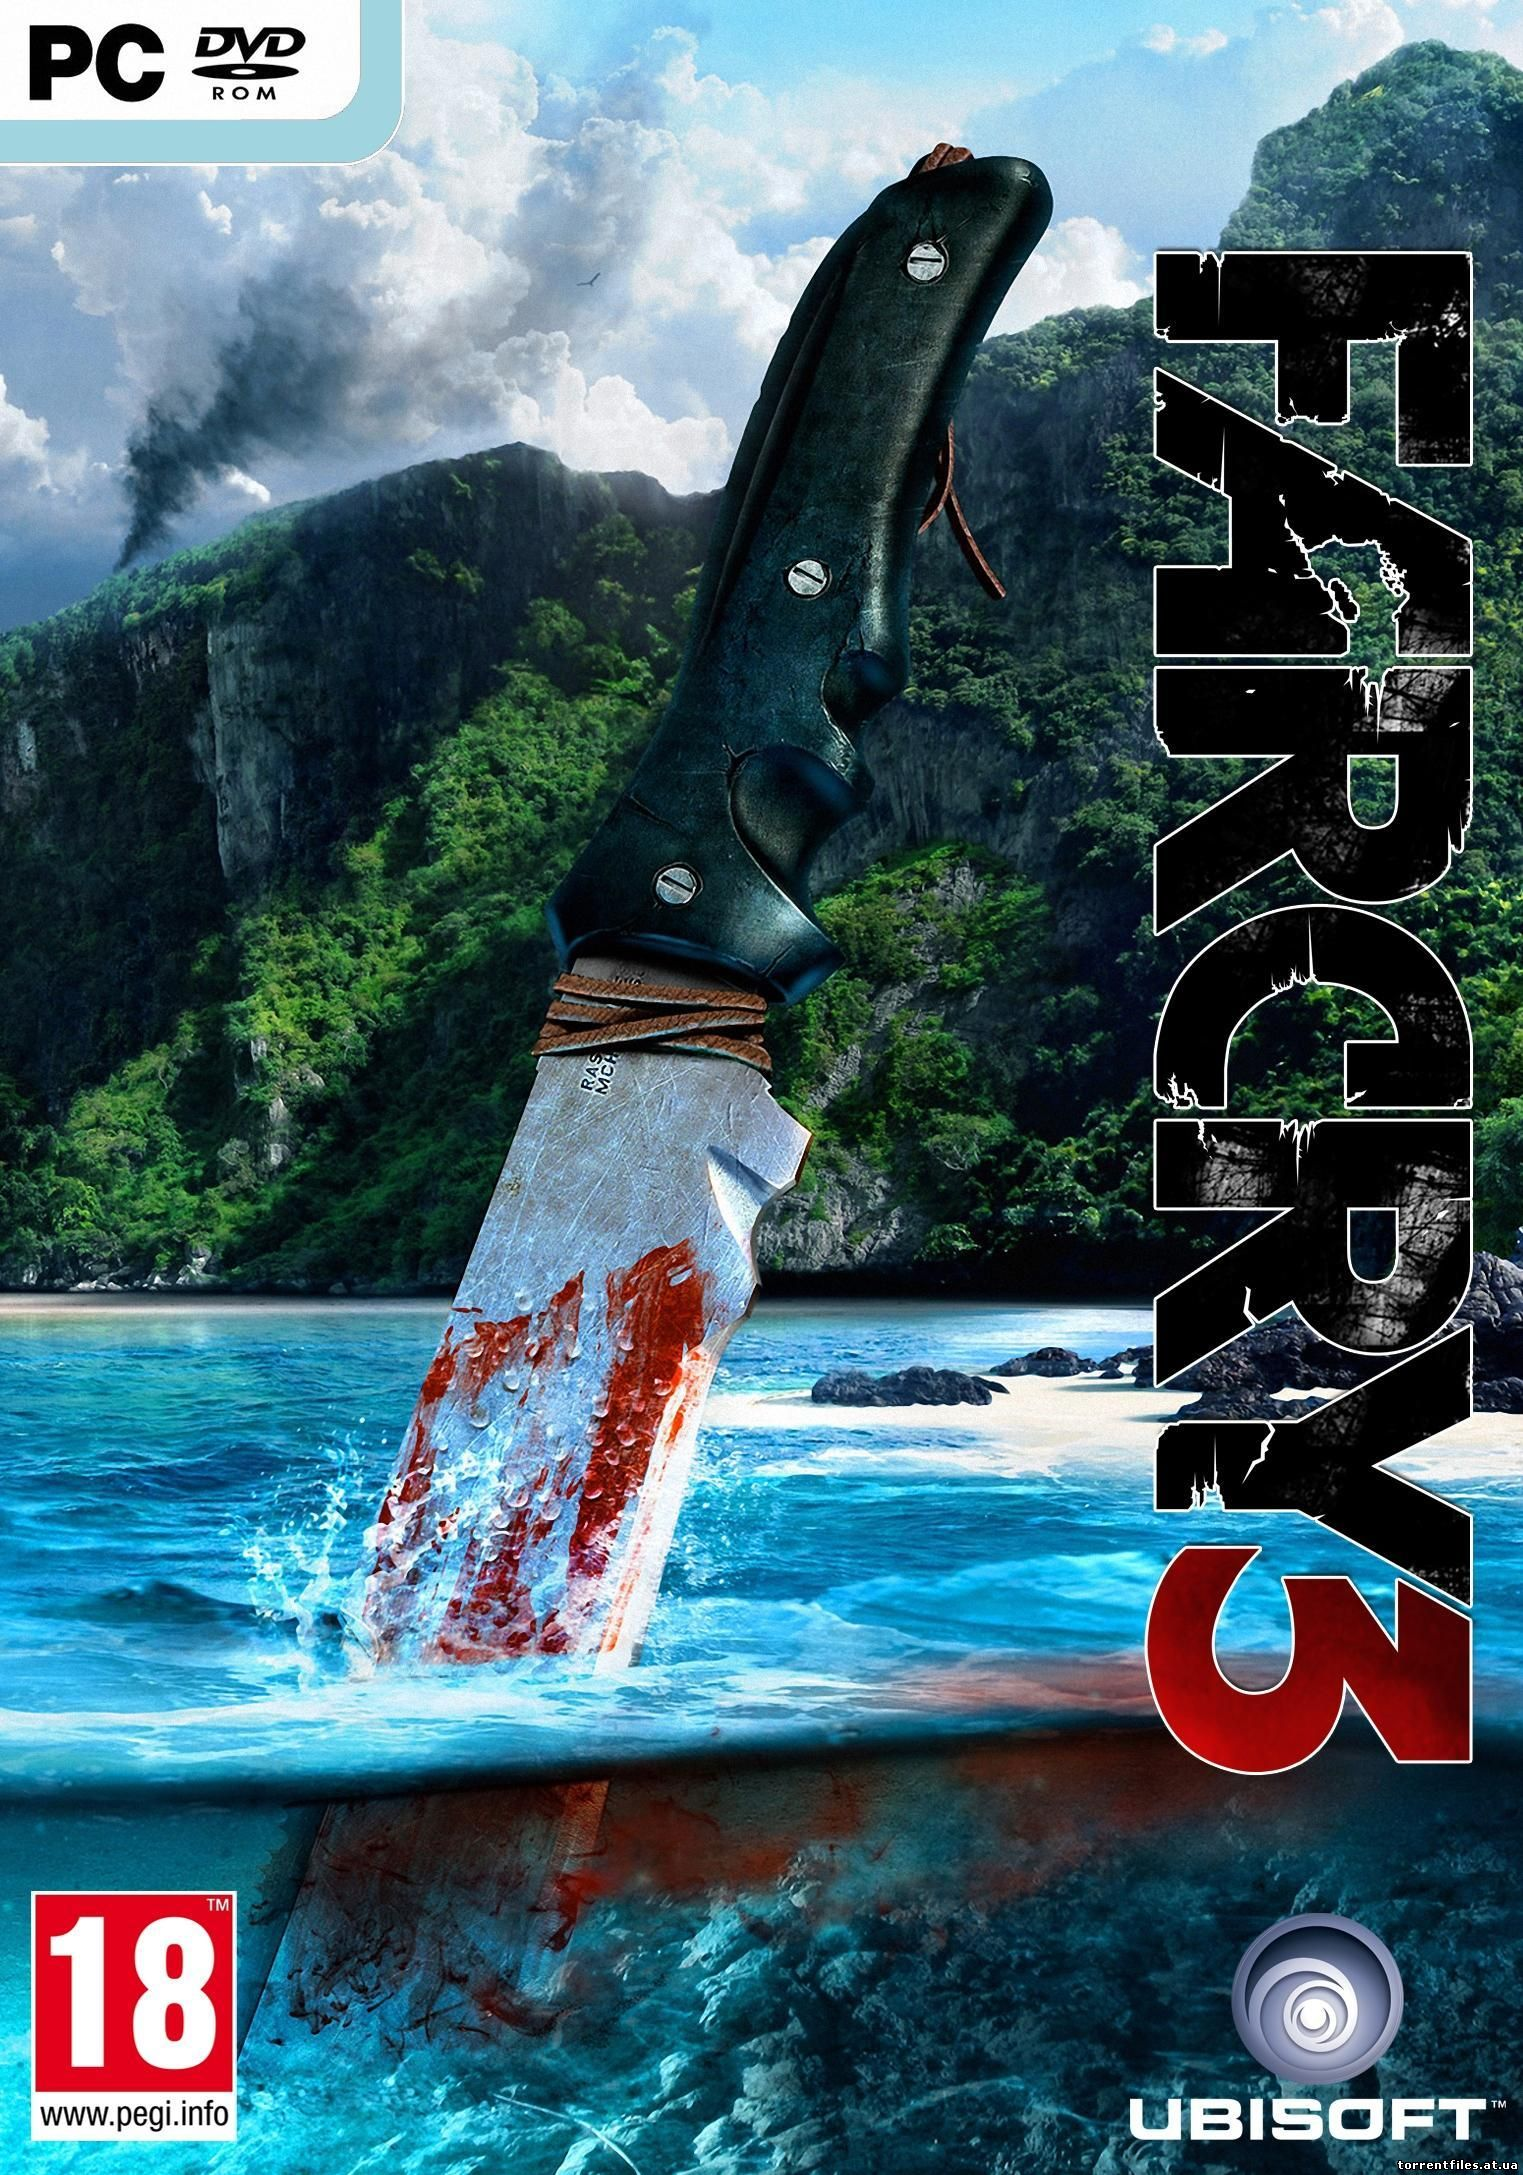 Download Save Game Far Cry 3 Mission 2 | PHYCEBINESS BLOG